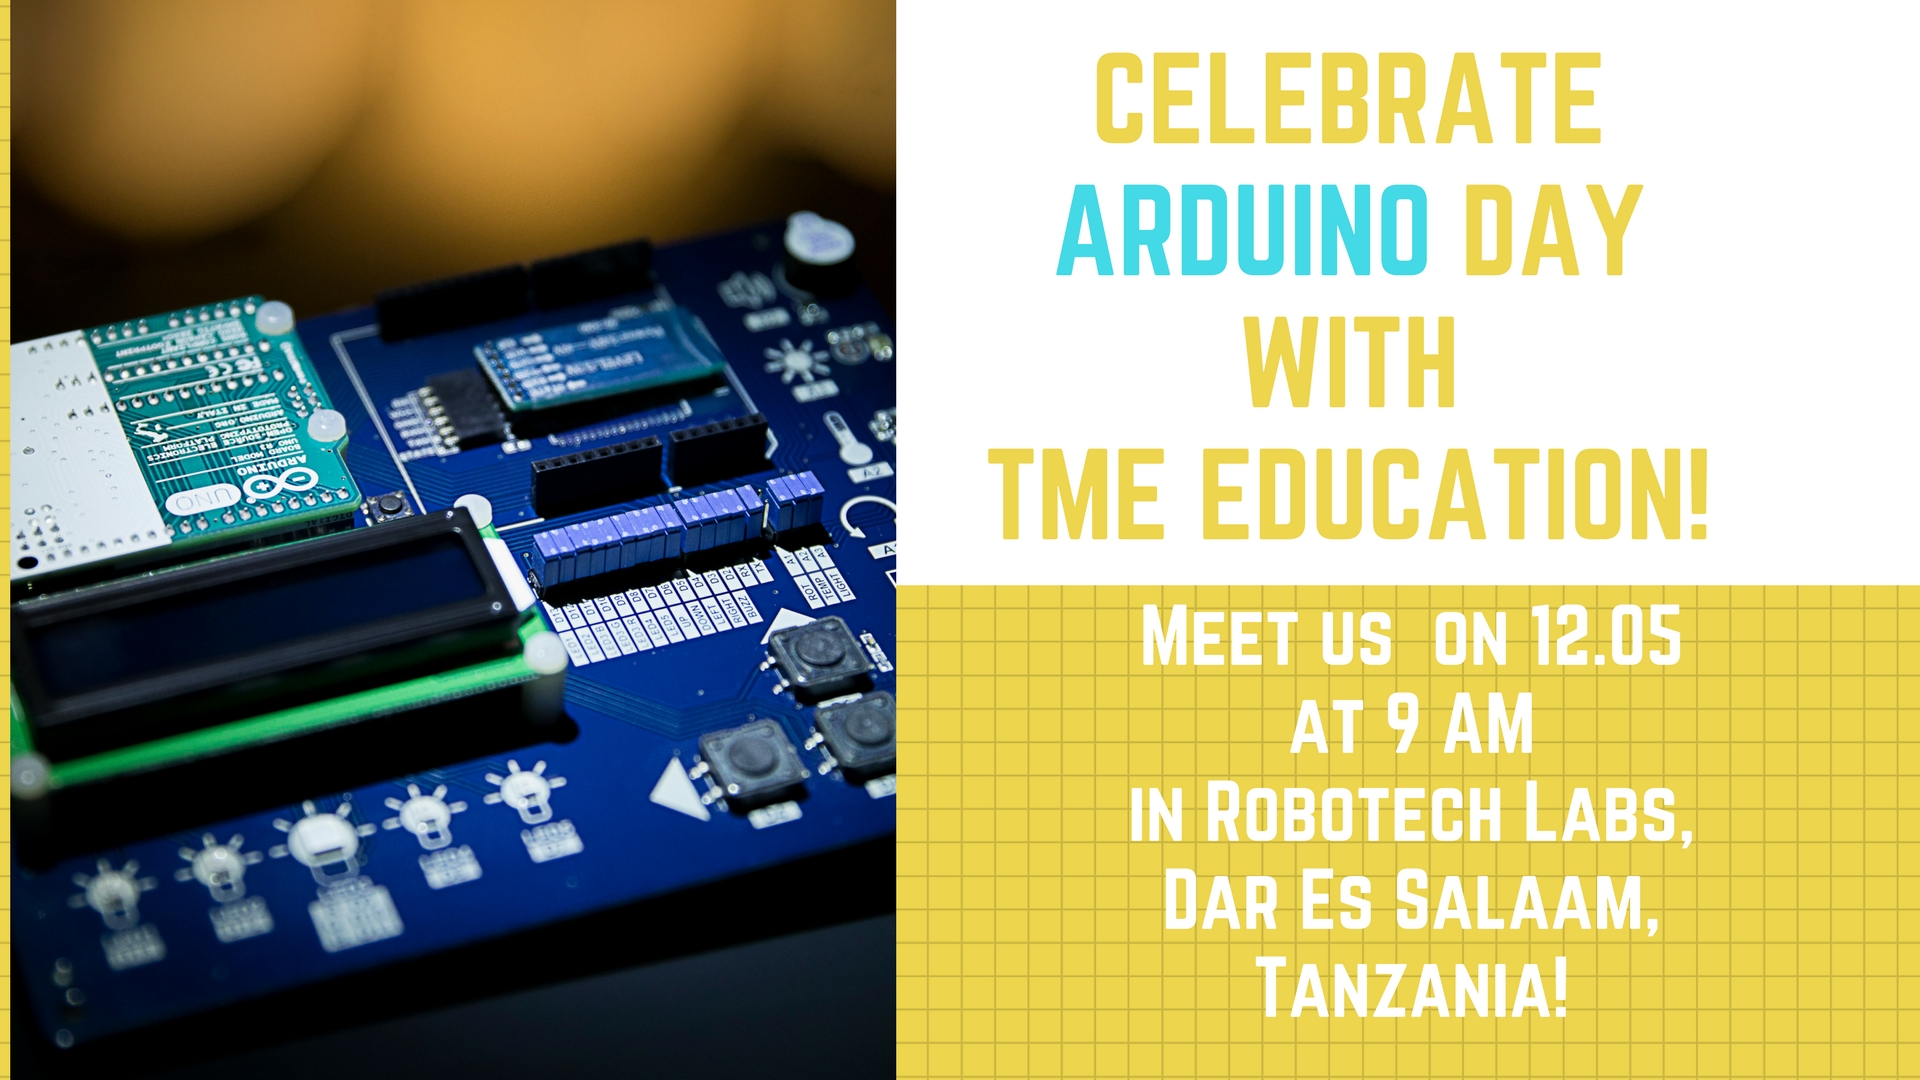 Arduino birthday! Let's celebrate it together in Tanzania!